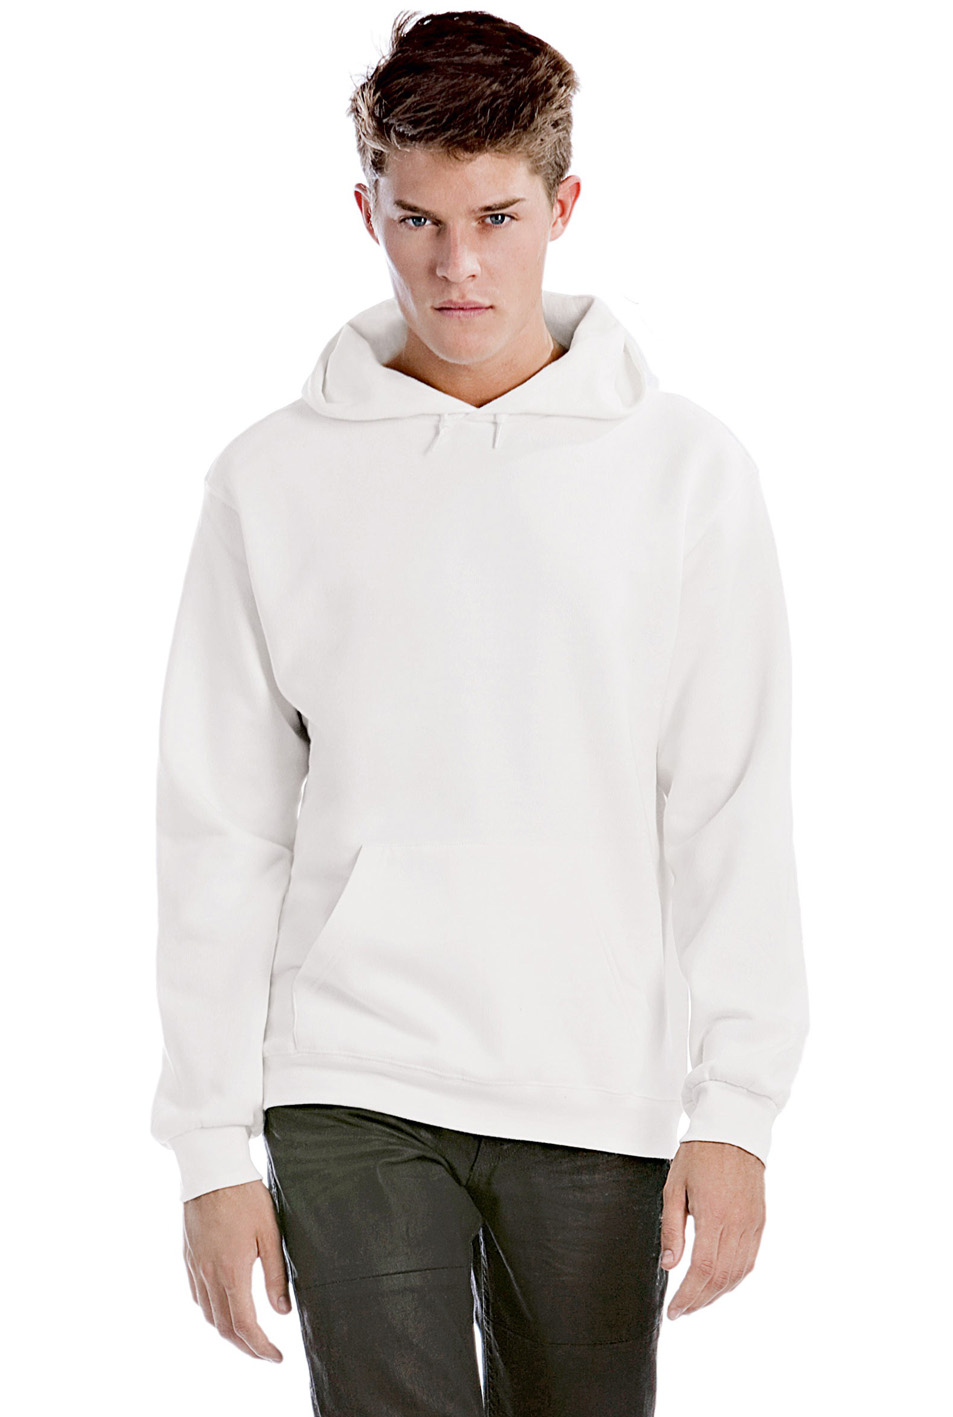 B&C Hooded Sweat-shirt